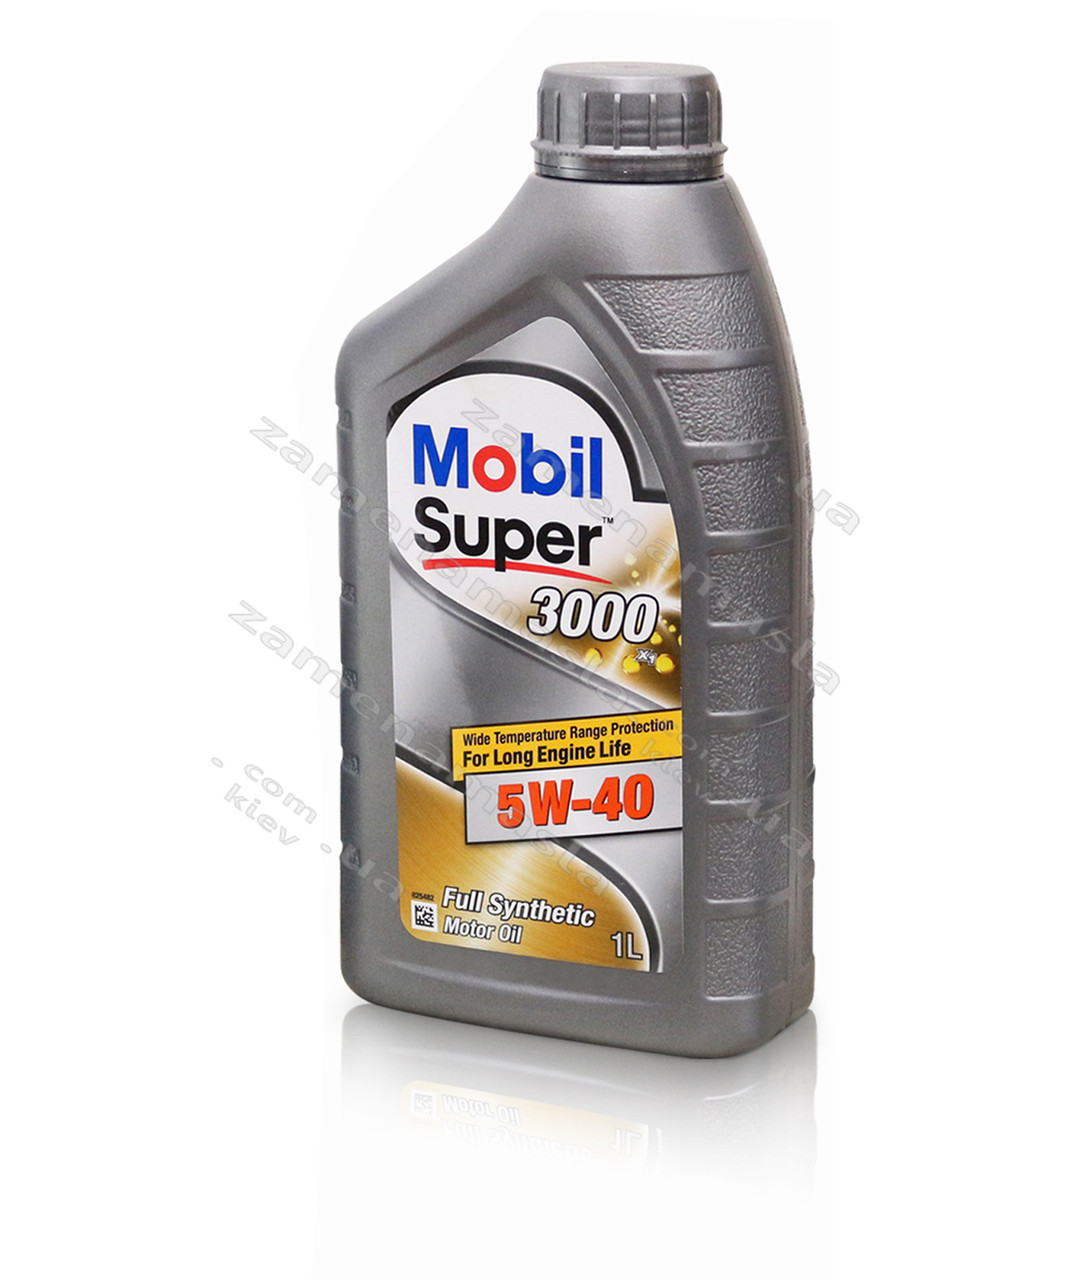 Mobil Super 3000 5W40 1л - моторное масло